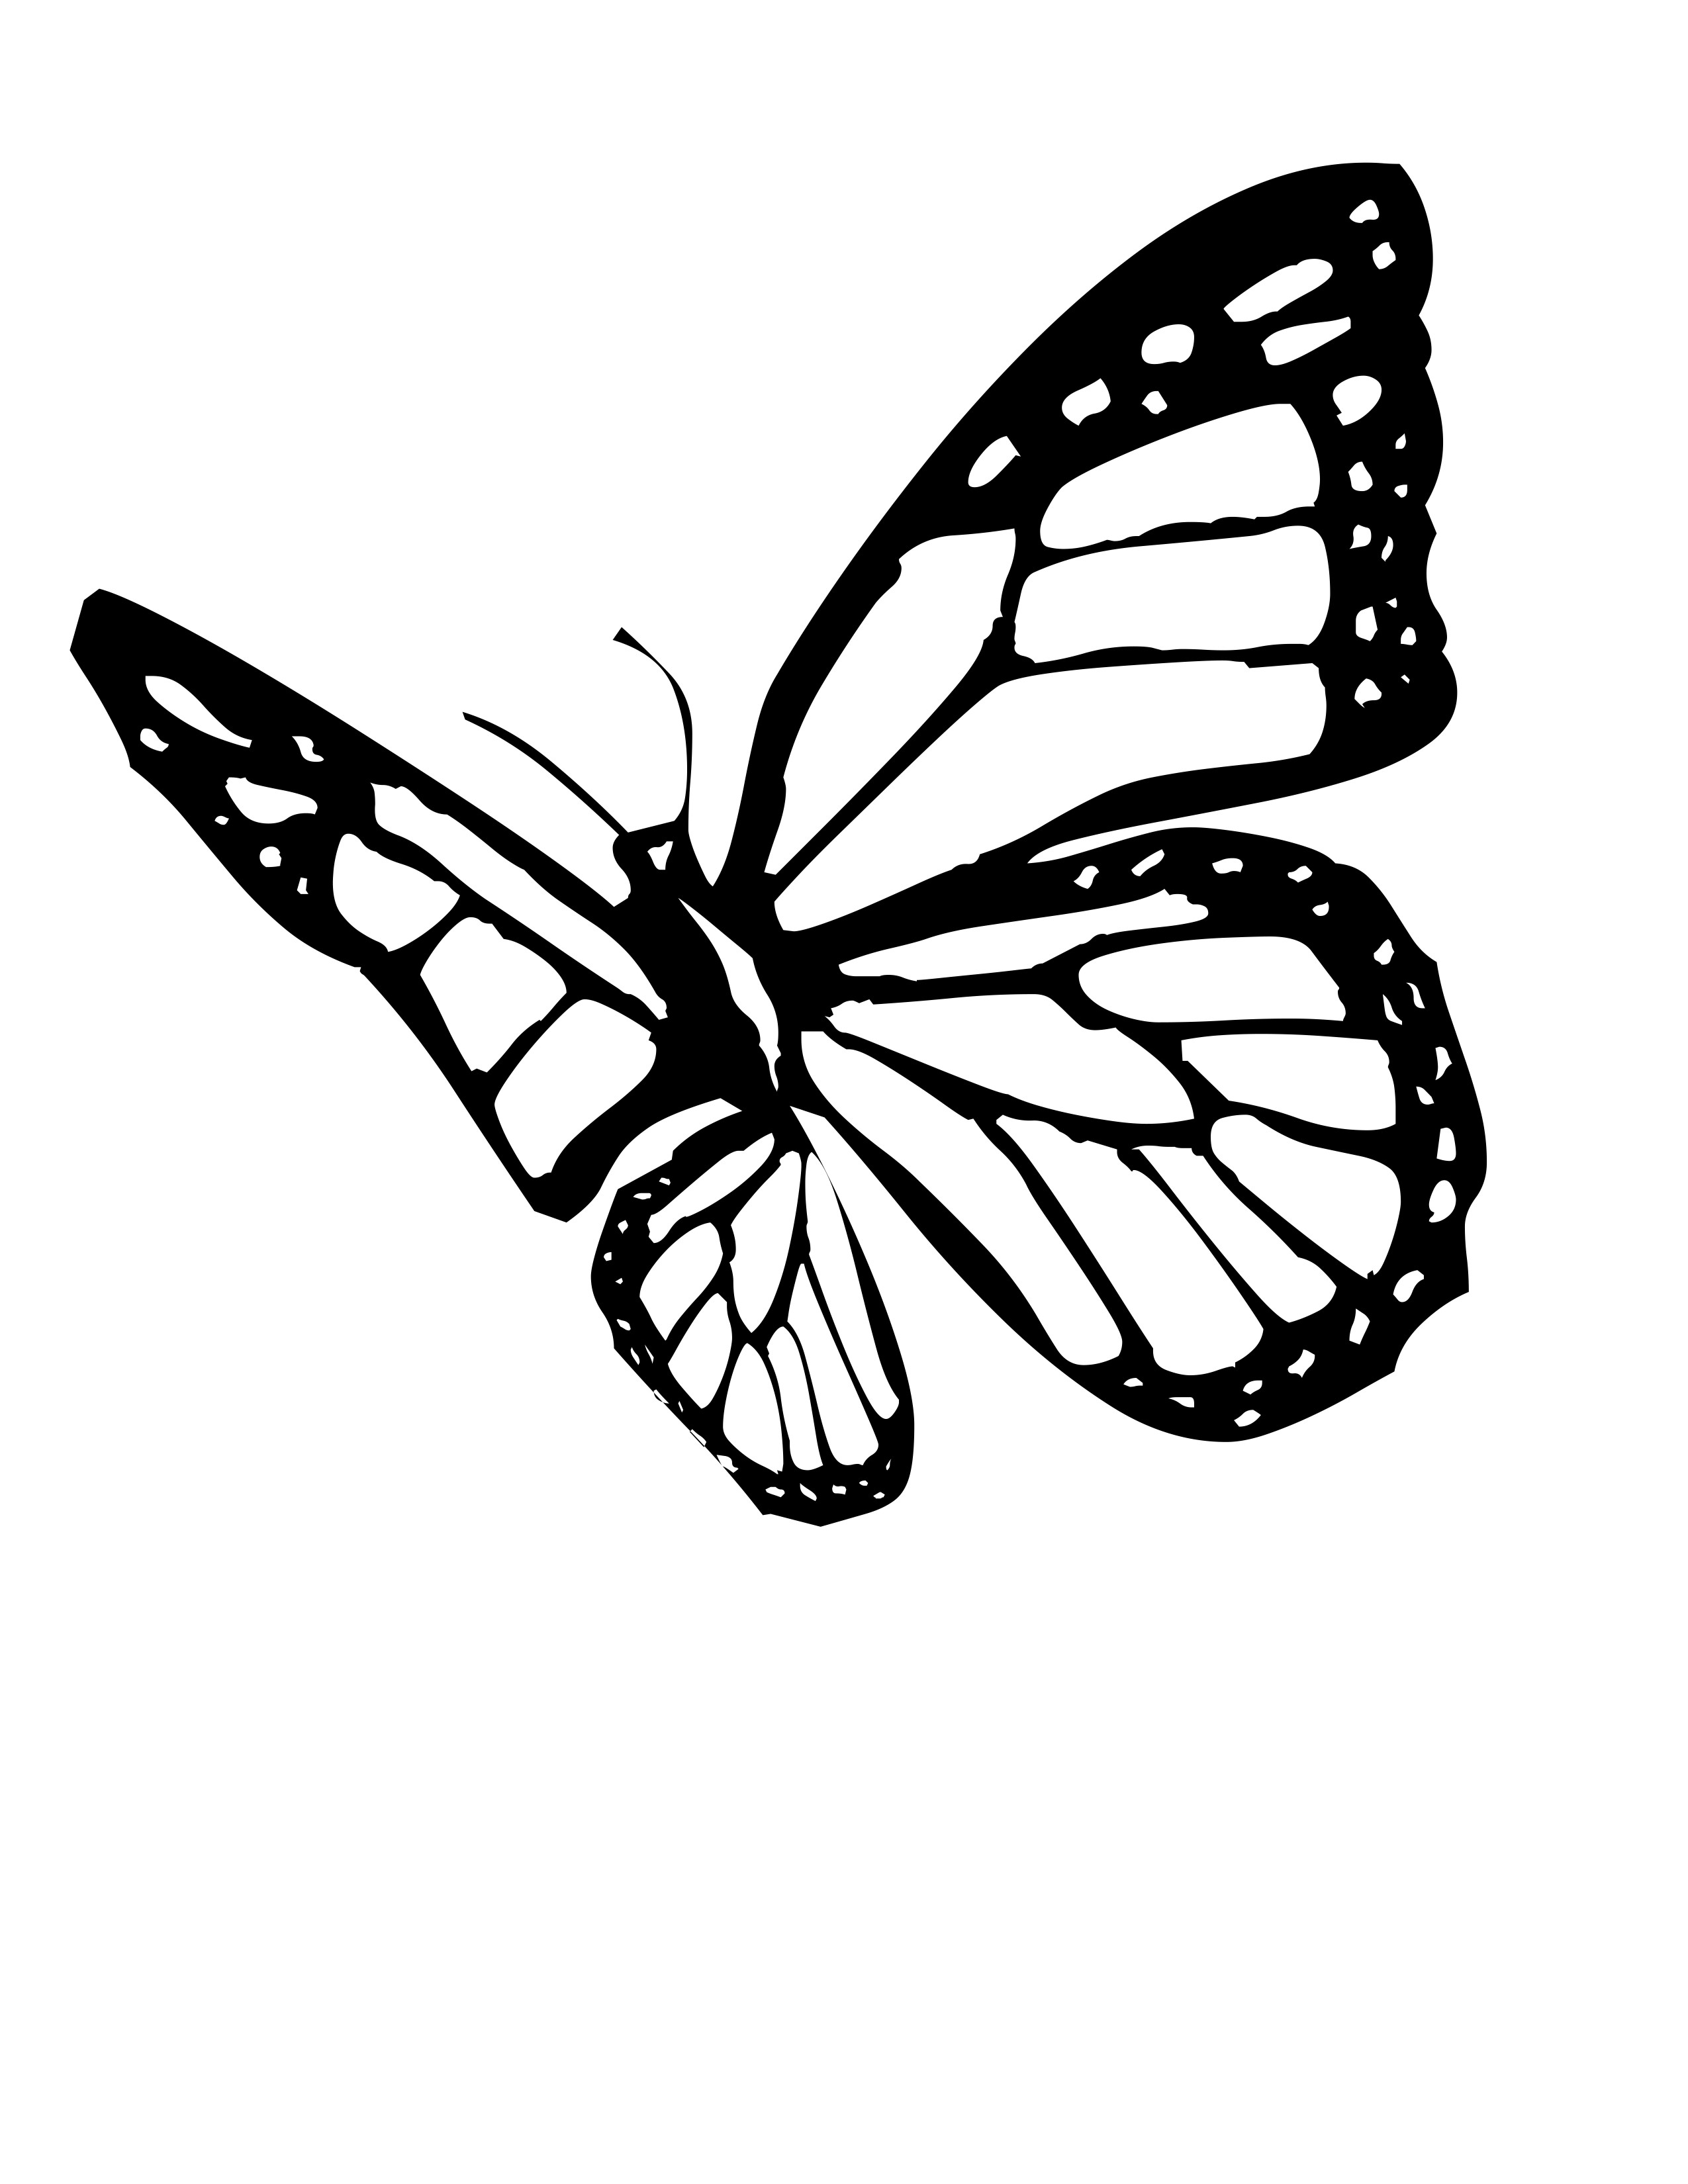 Butterfly flying clipart black and white clip art library Butterfly Clipart Black And White | Free download best Butterfly ... clip art library